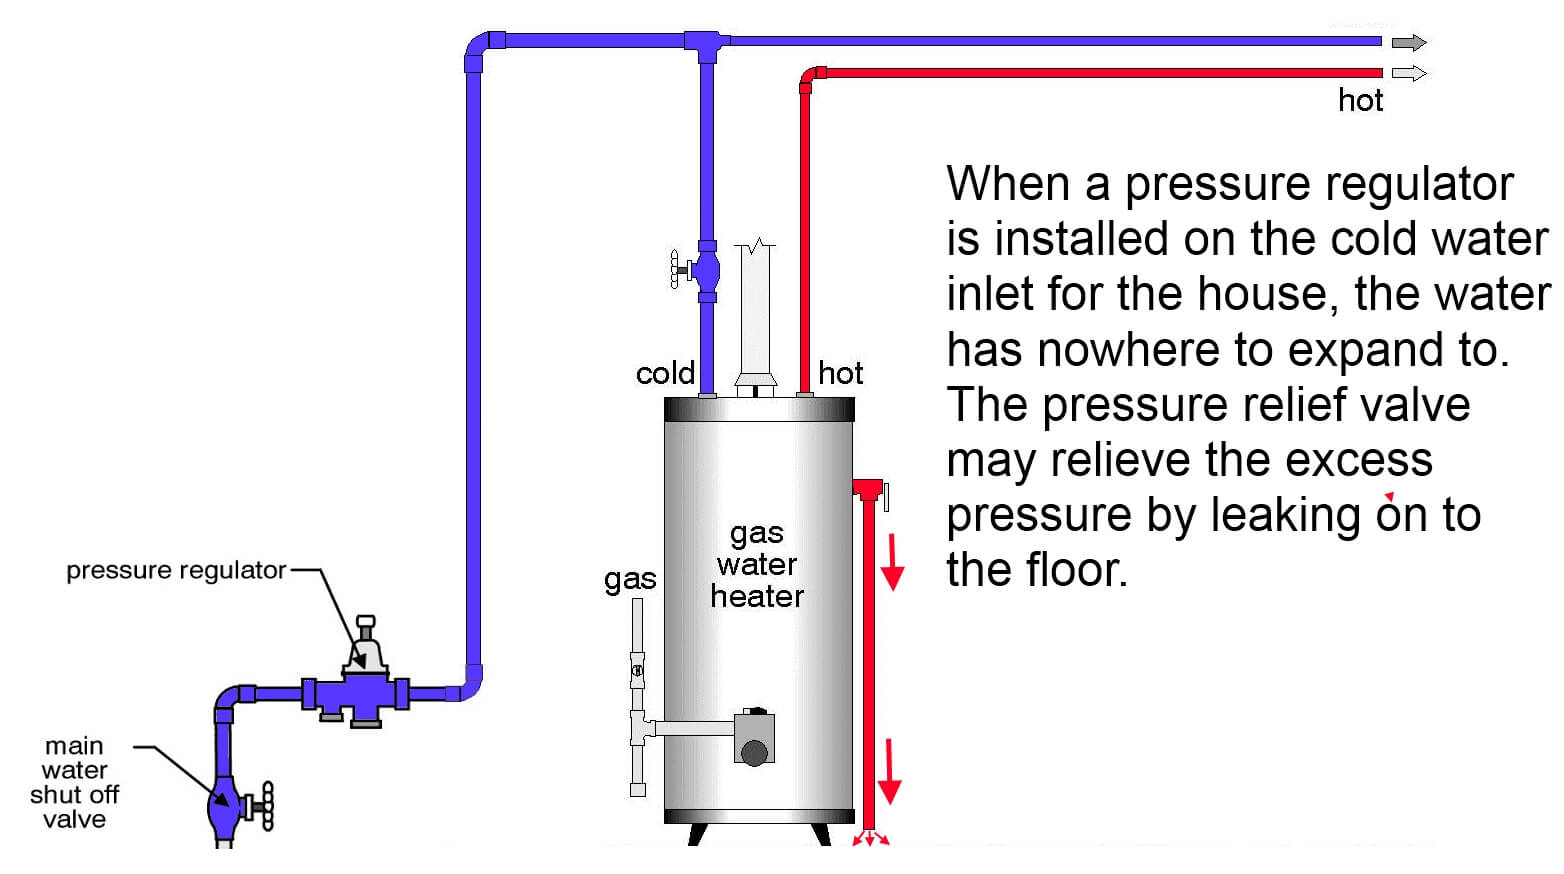 hight resolution of pressure regulator prevents expansion